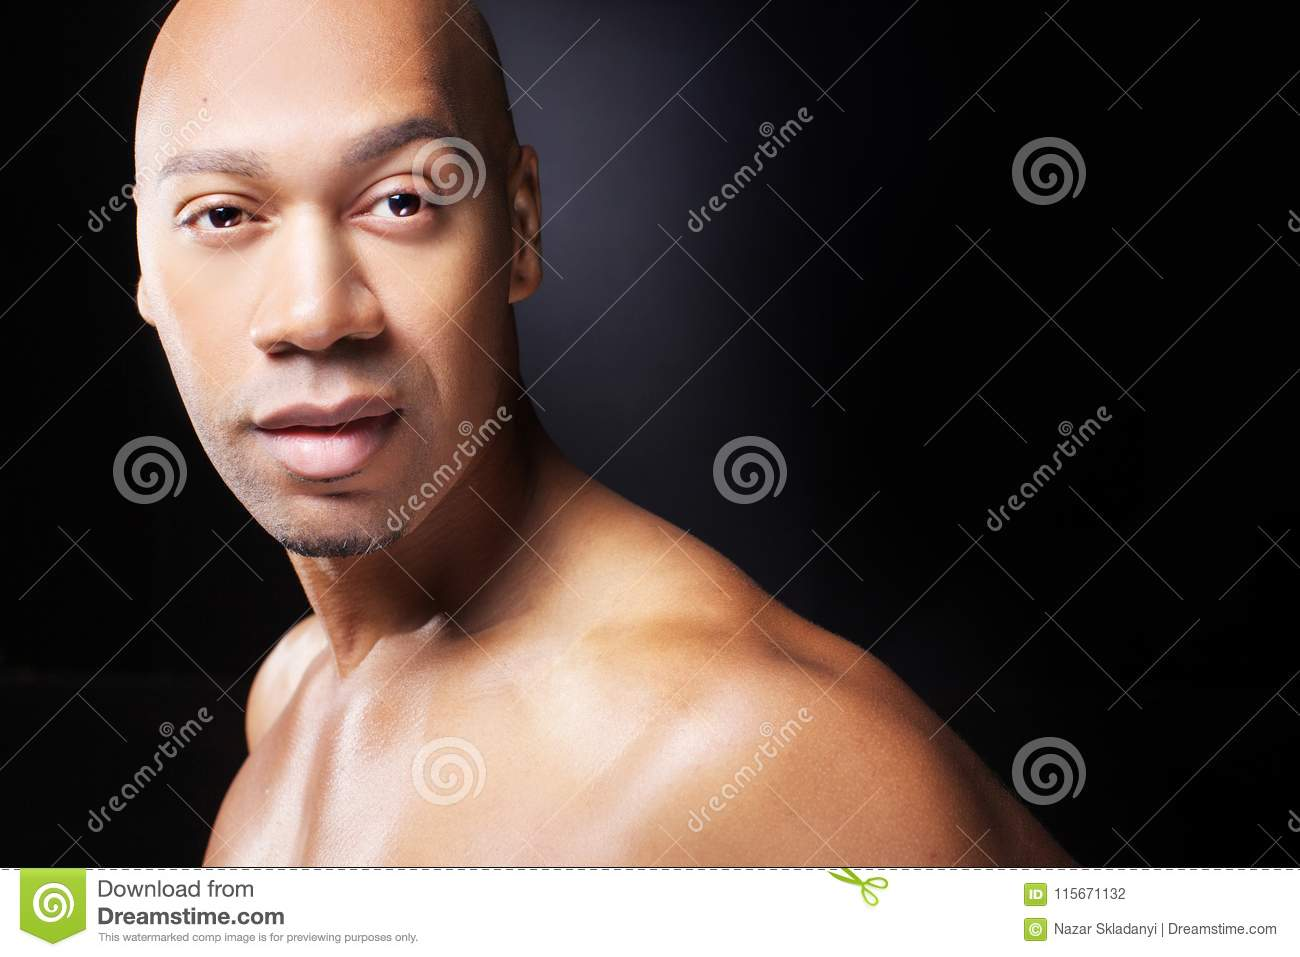 Naked black african american man